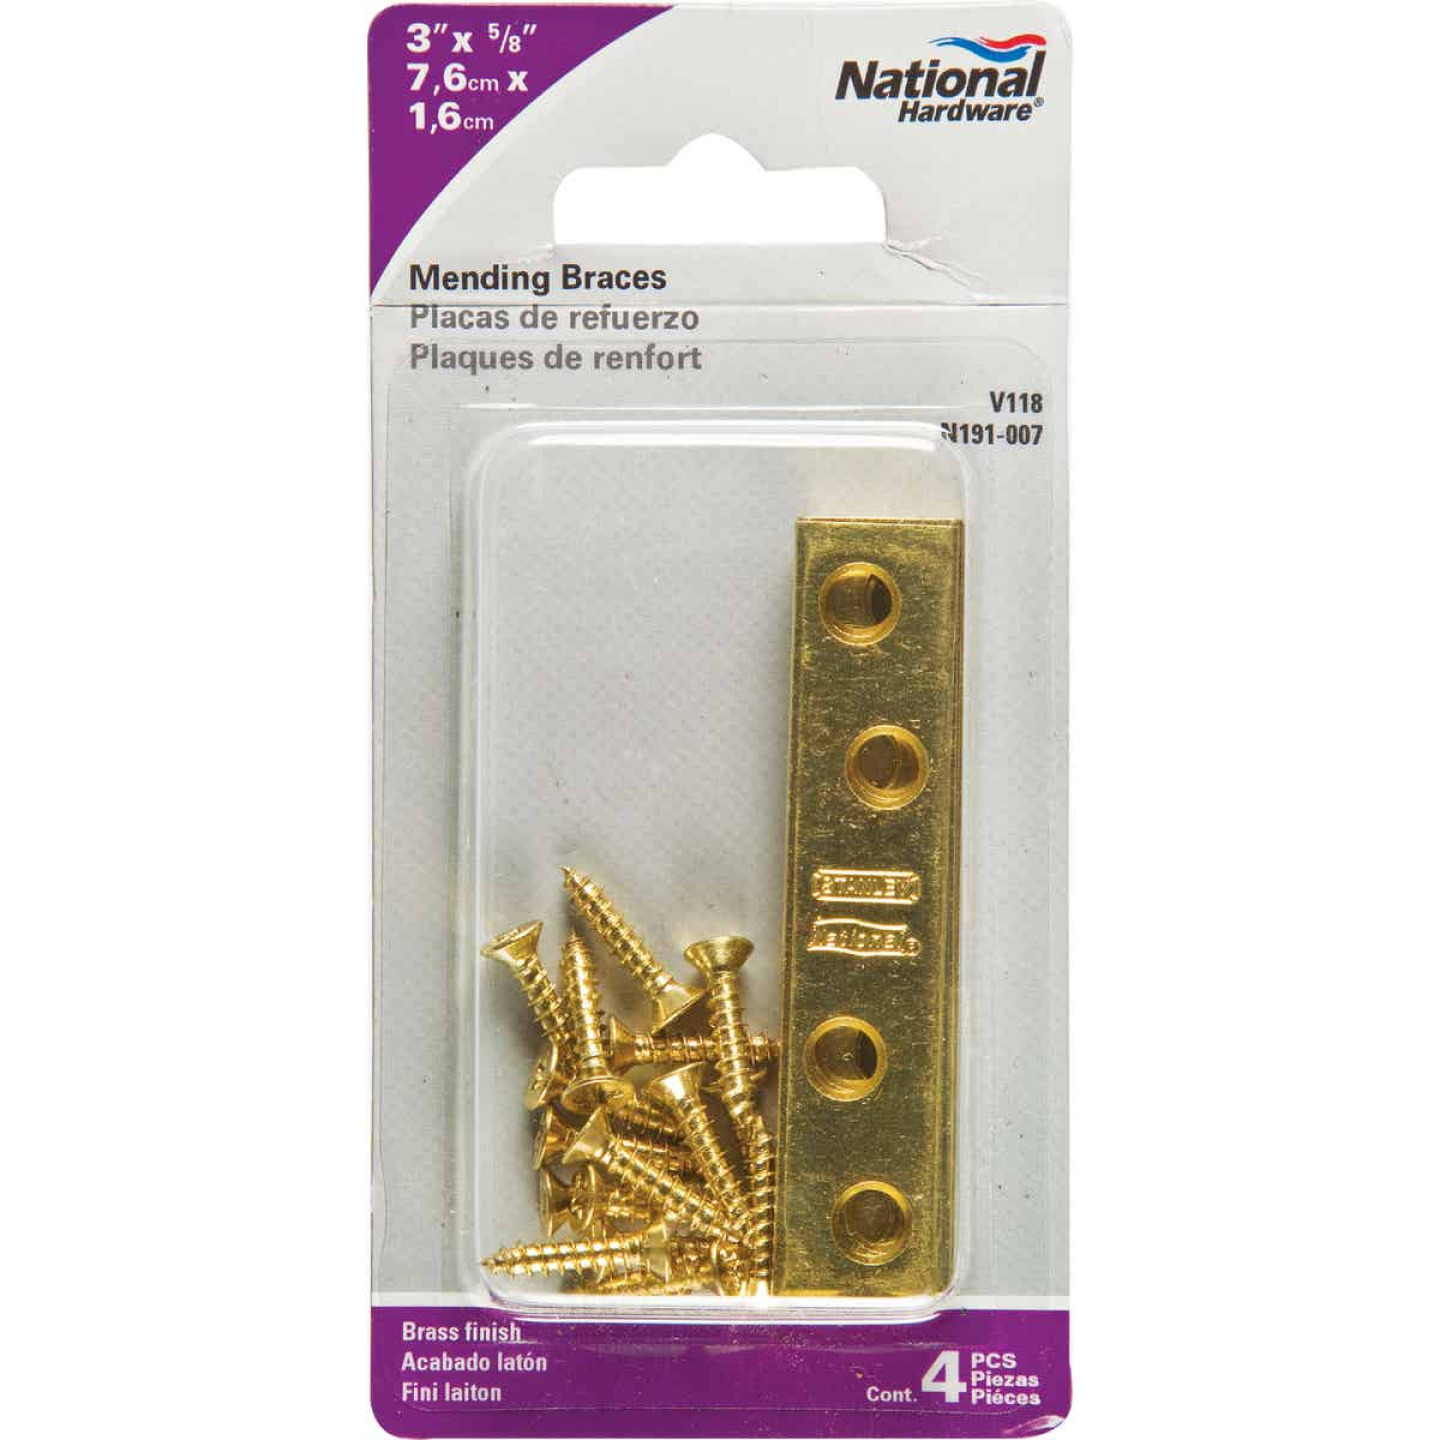 National Catalog 118 3 In. x 5/8 In. Brass Steel Mending Brace (4-Count) Image 2